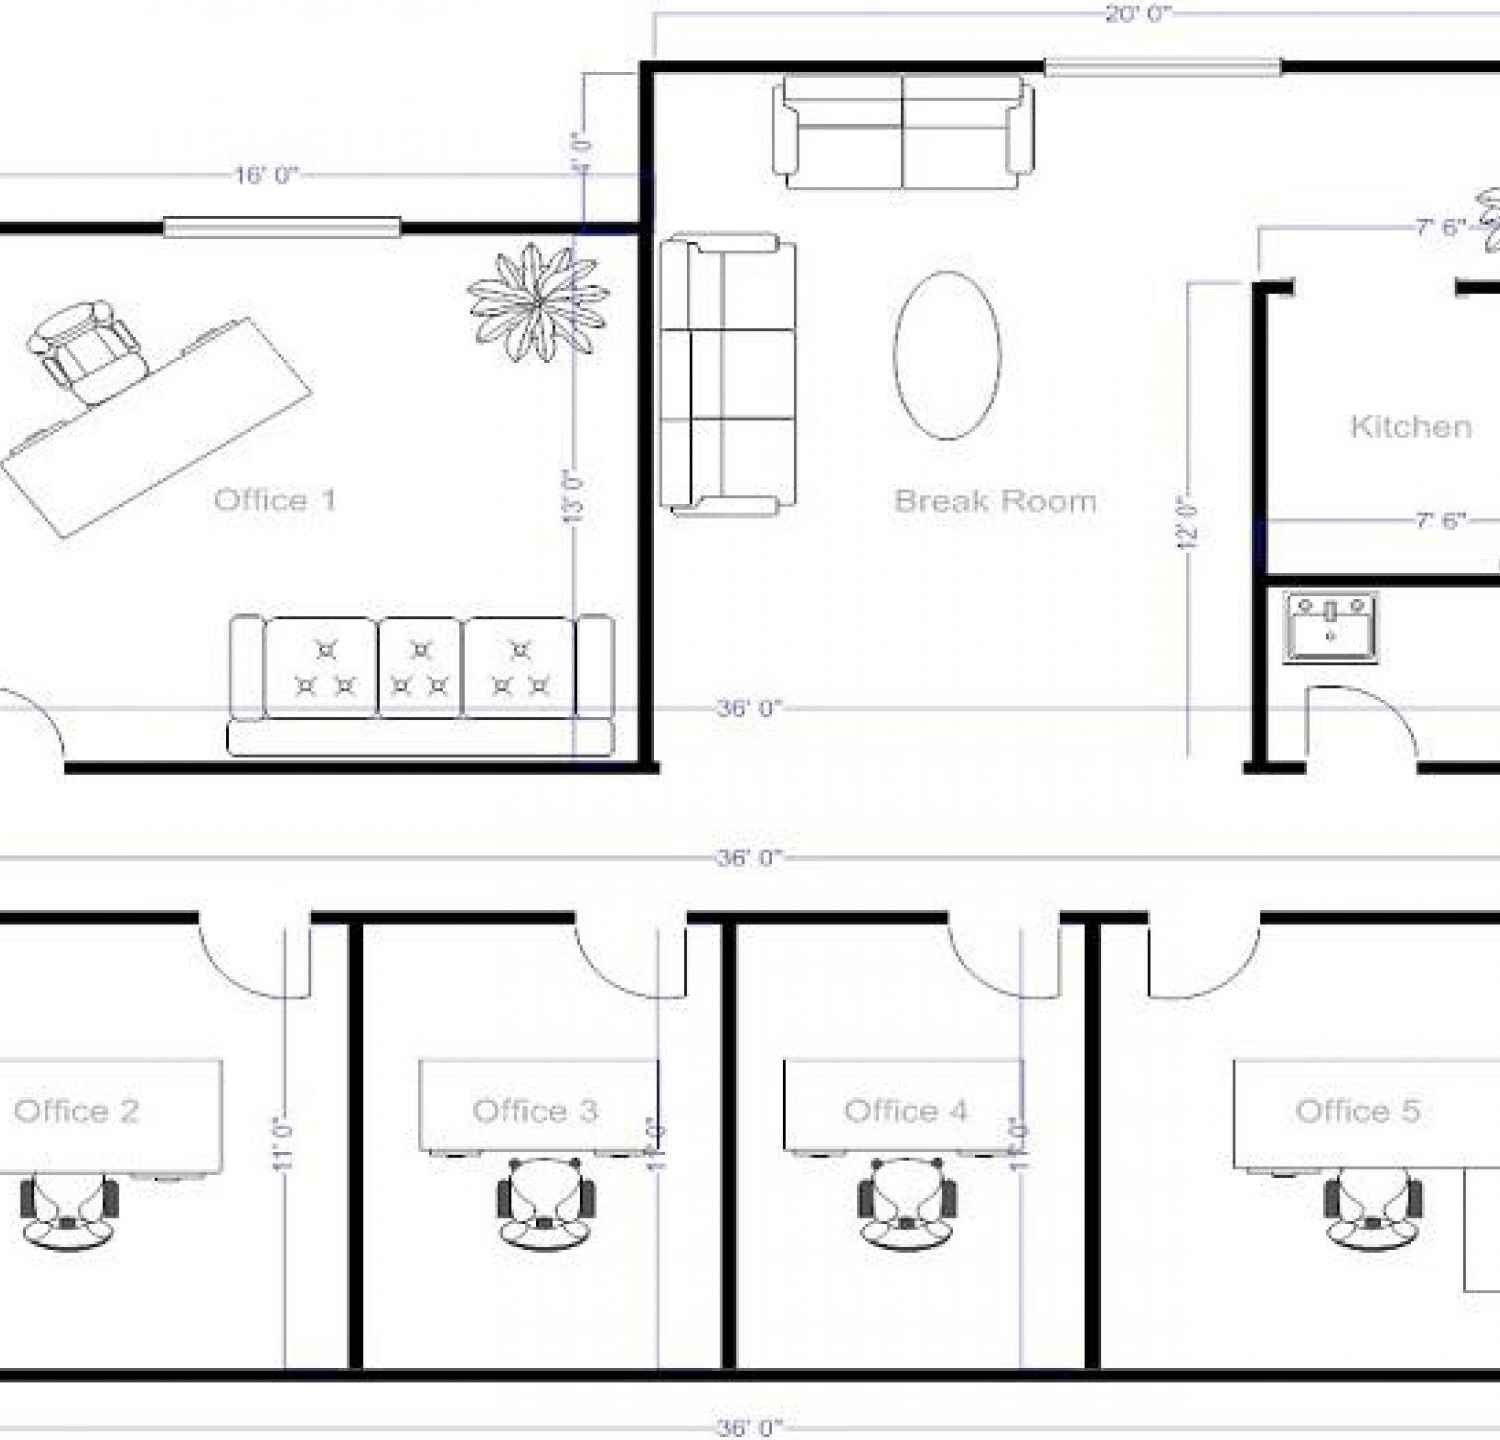 50 Floor Plan Layout software for Mac Yy3l